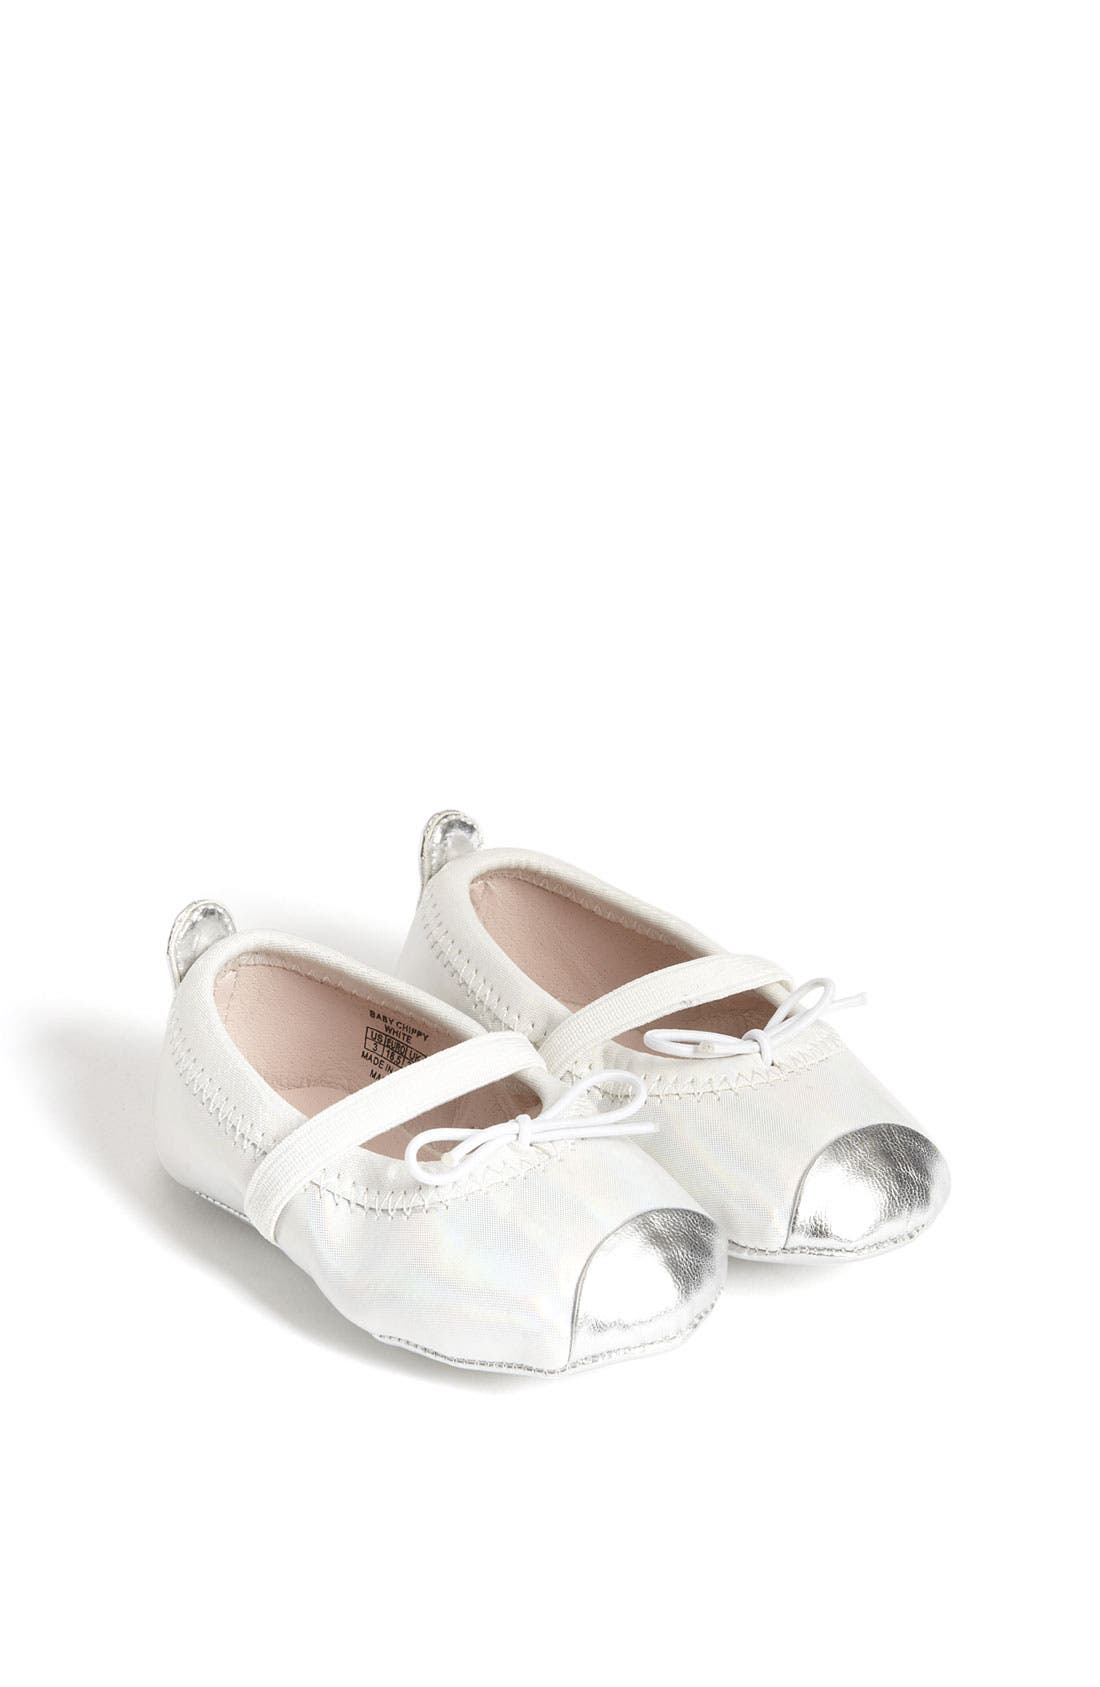 Alternate Image 1 Selected - Stuart Weitzman 'Baby Chippy' Crib Shoe (Baby)